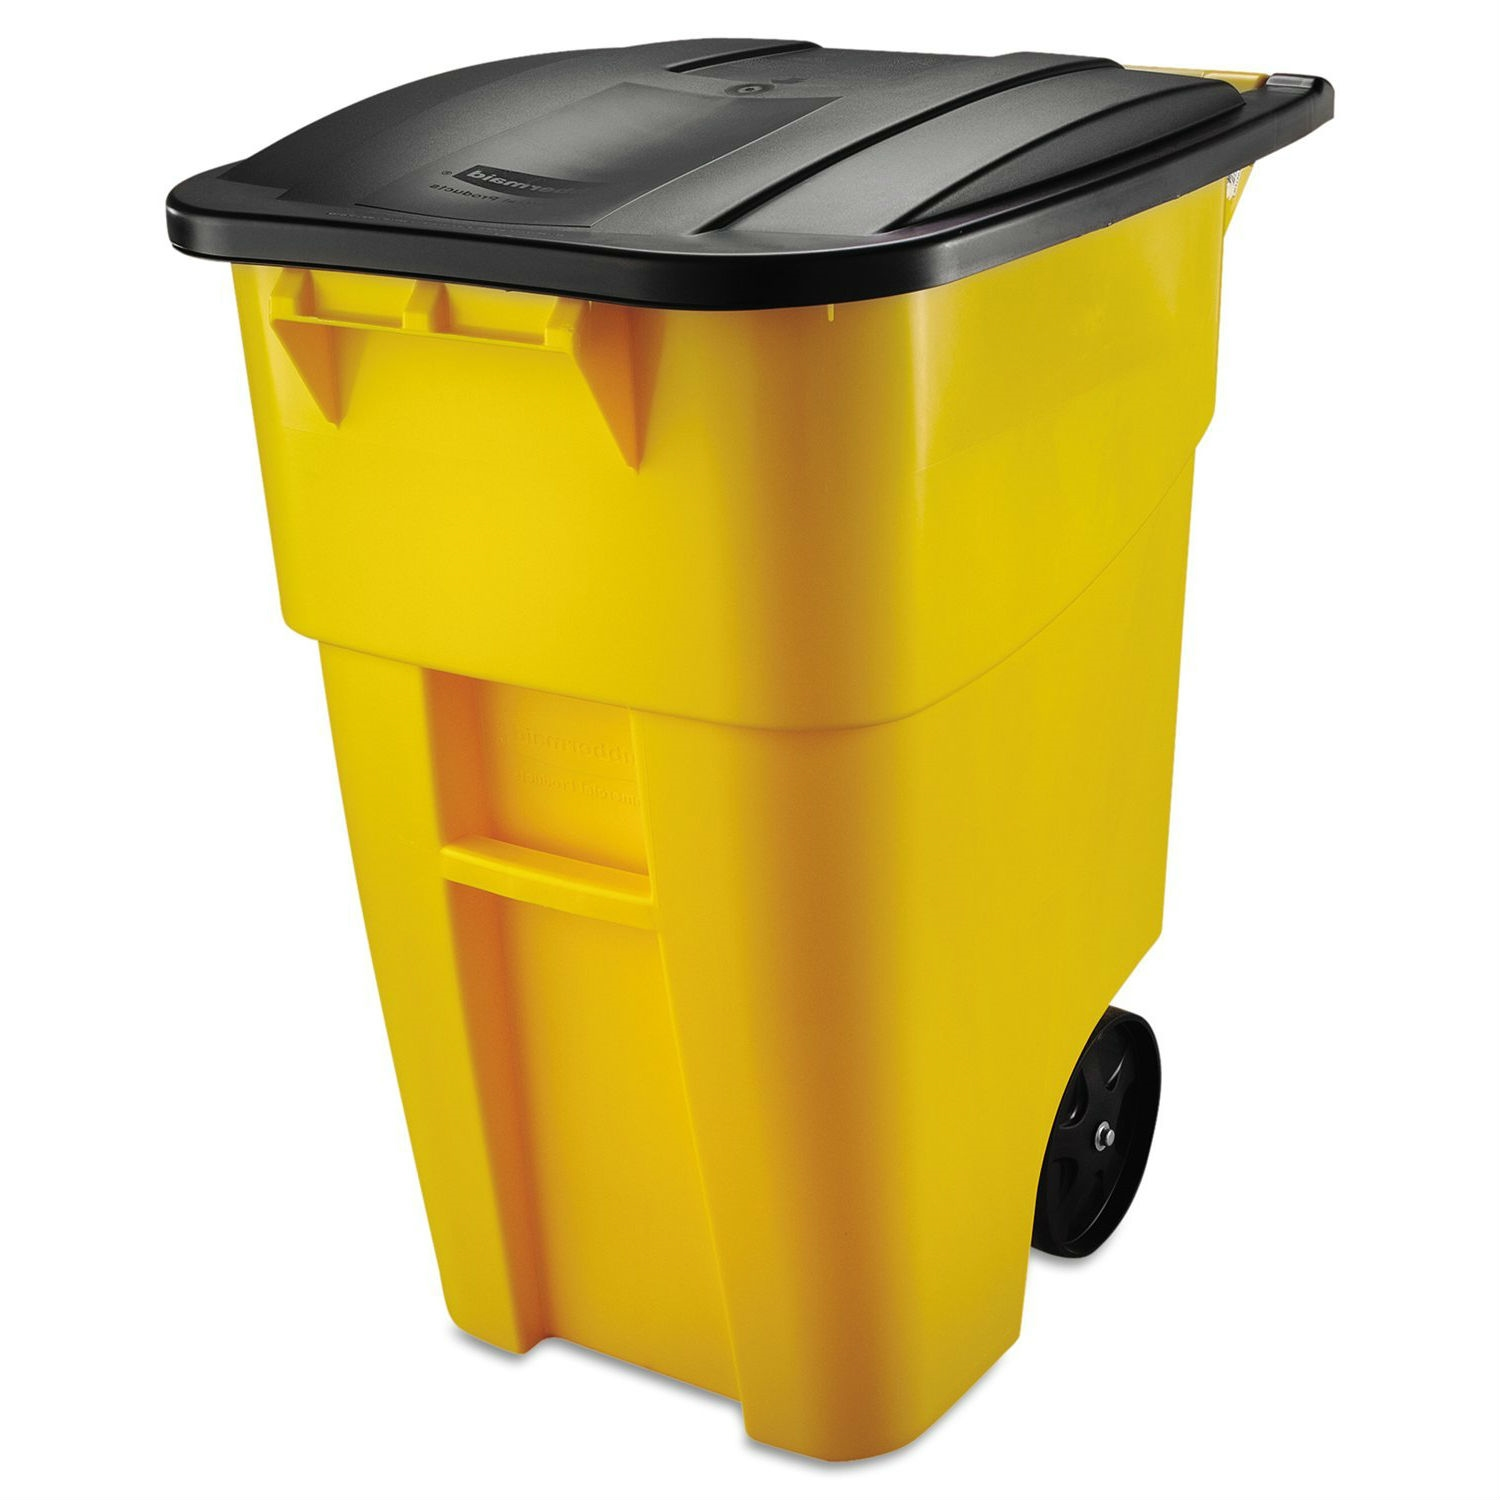 50 Gallon Yellow Commercial Heavy Duty Rollout Trash Can Waste Utility Container Fastfurnishings Com